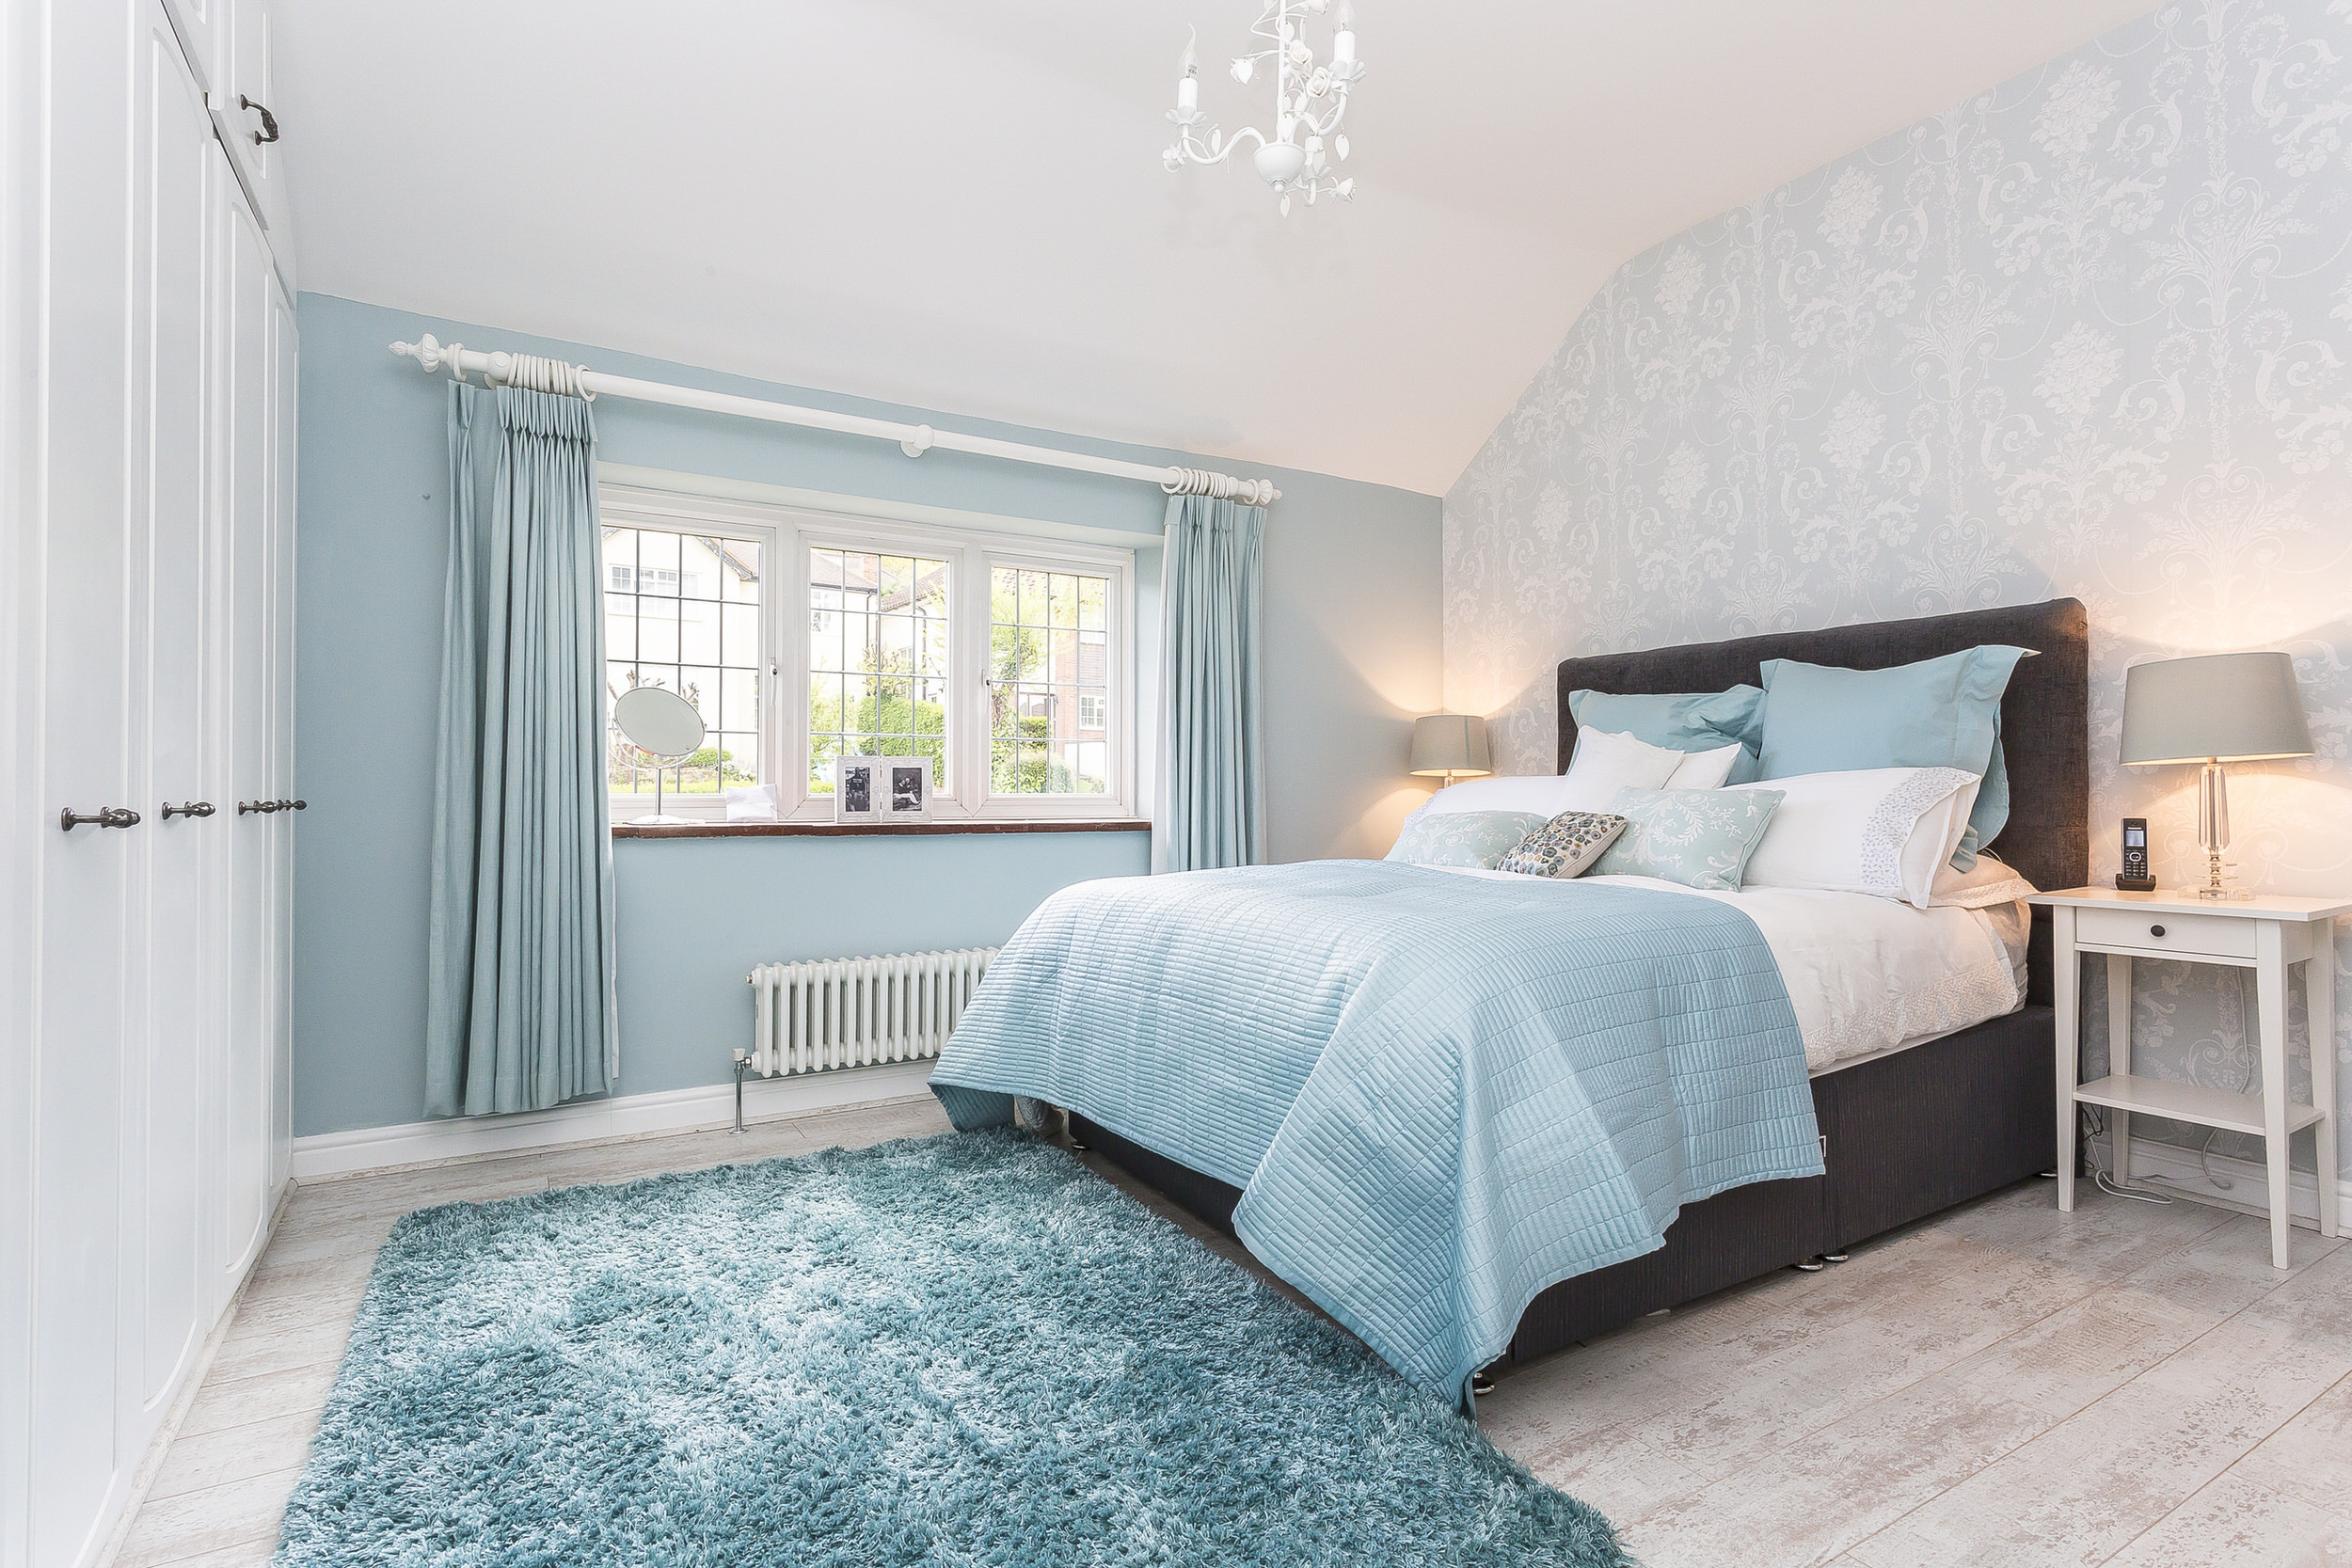 Professional Architectural & Interior photography by darryl rixon photography based in Coulsdon, Surrey CR5 for busy agents with fabulous properties